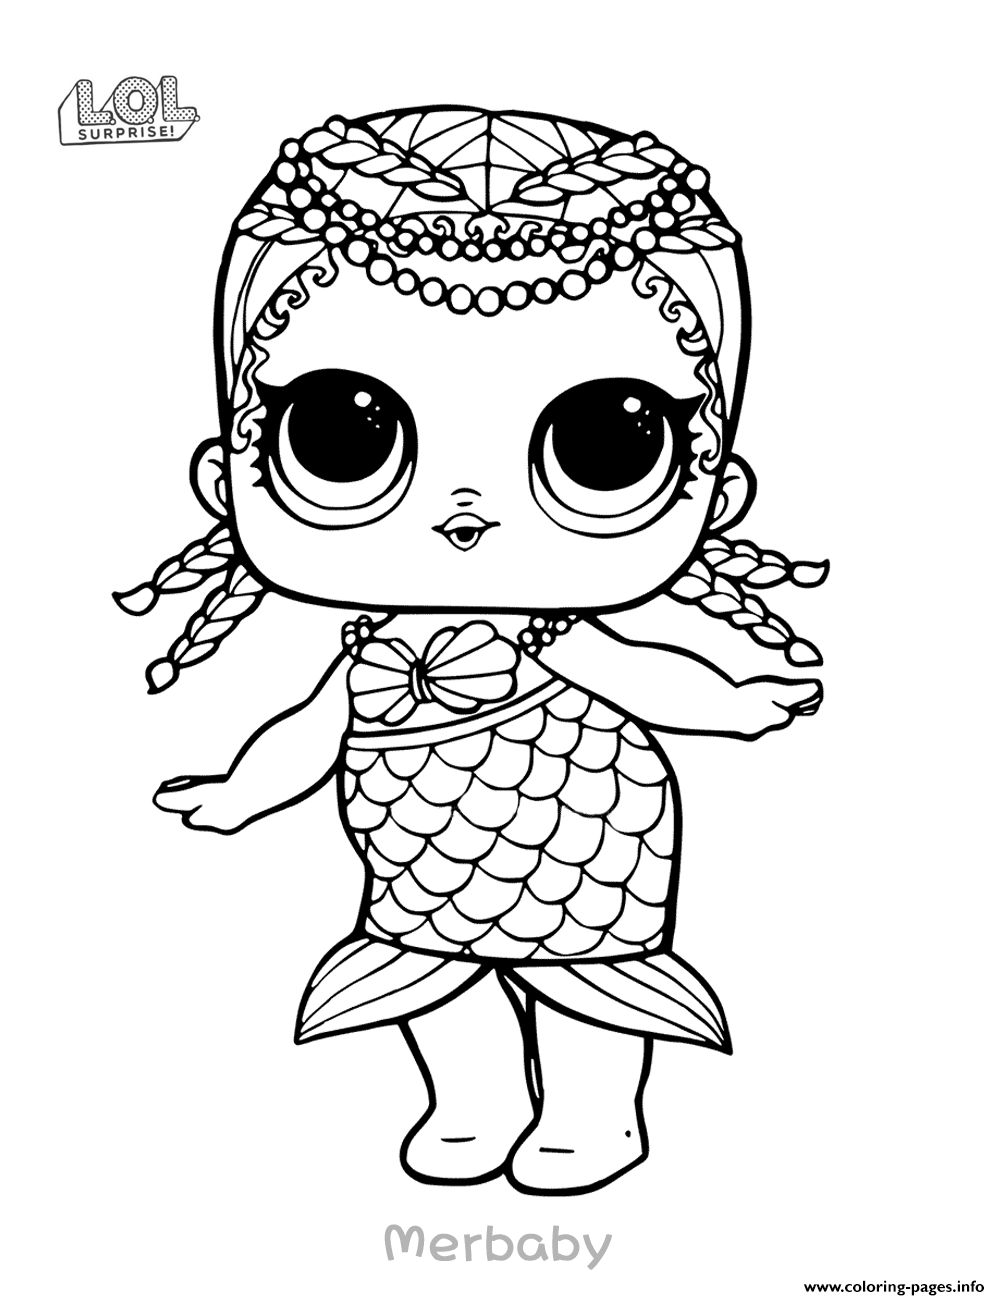 Mermaid lol surprise doll merbaby coloring pages printable